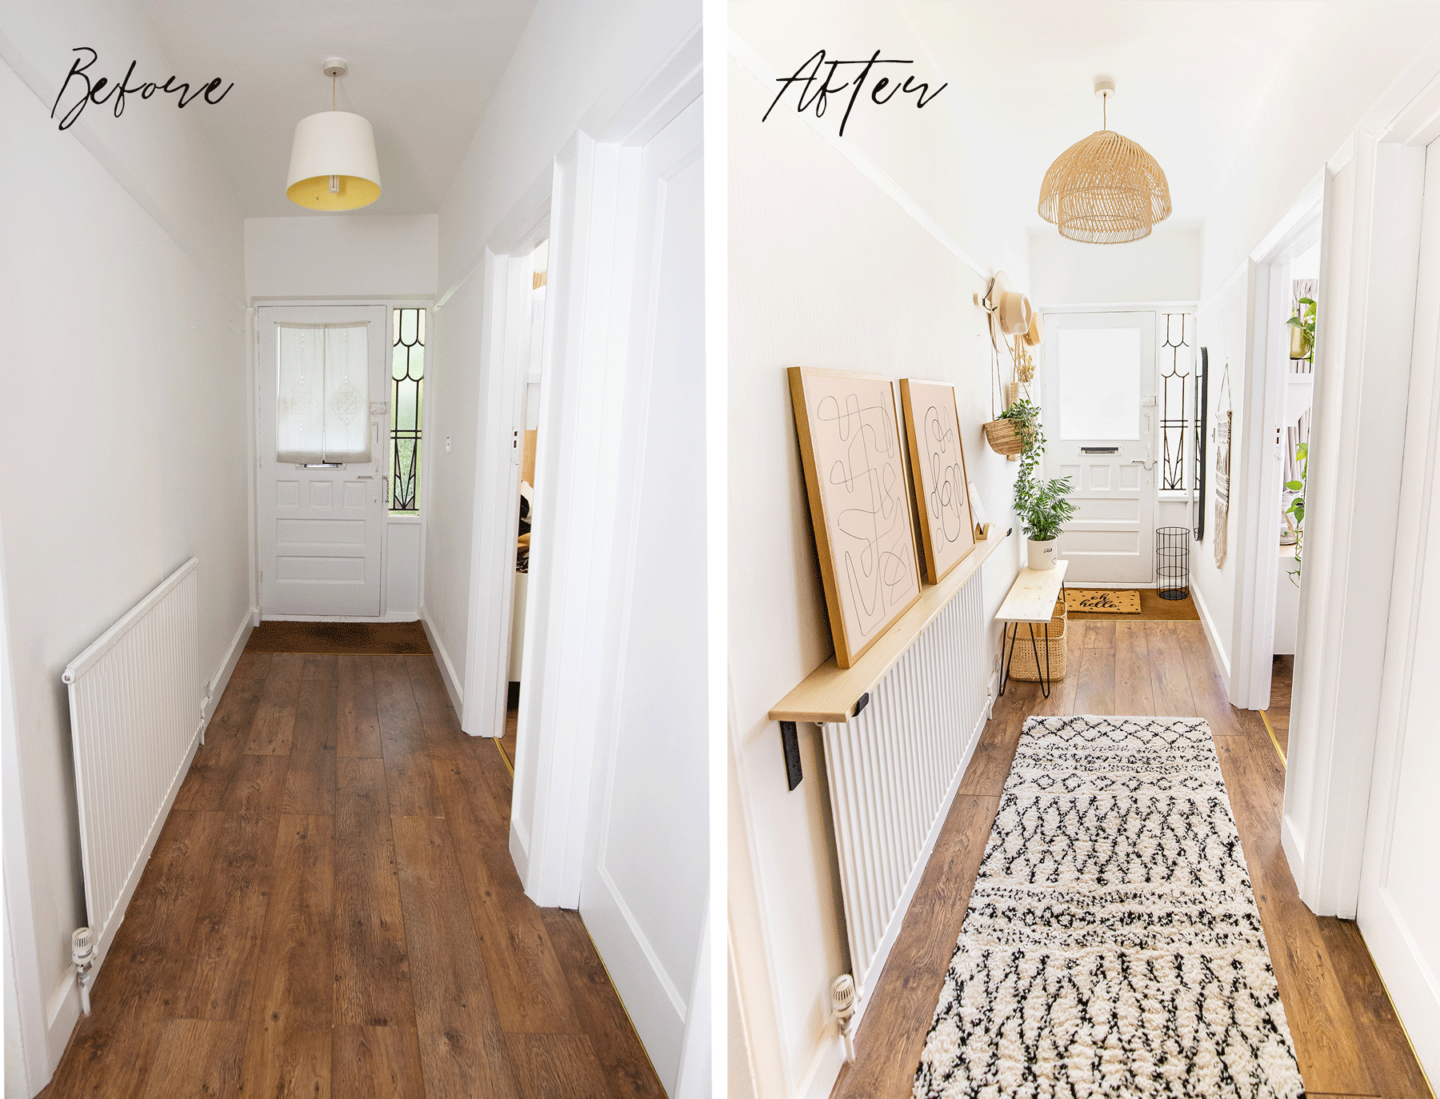 Hallway-Decorating-Ideas-kelseyinlondon-homewithkelsey-interior-decorating